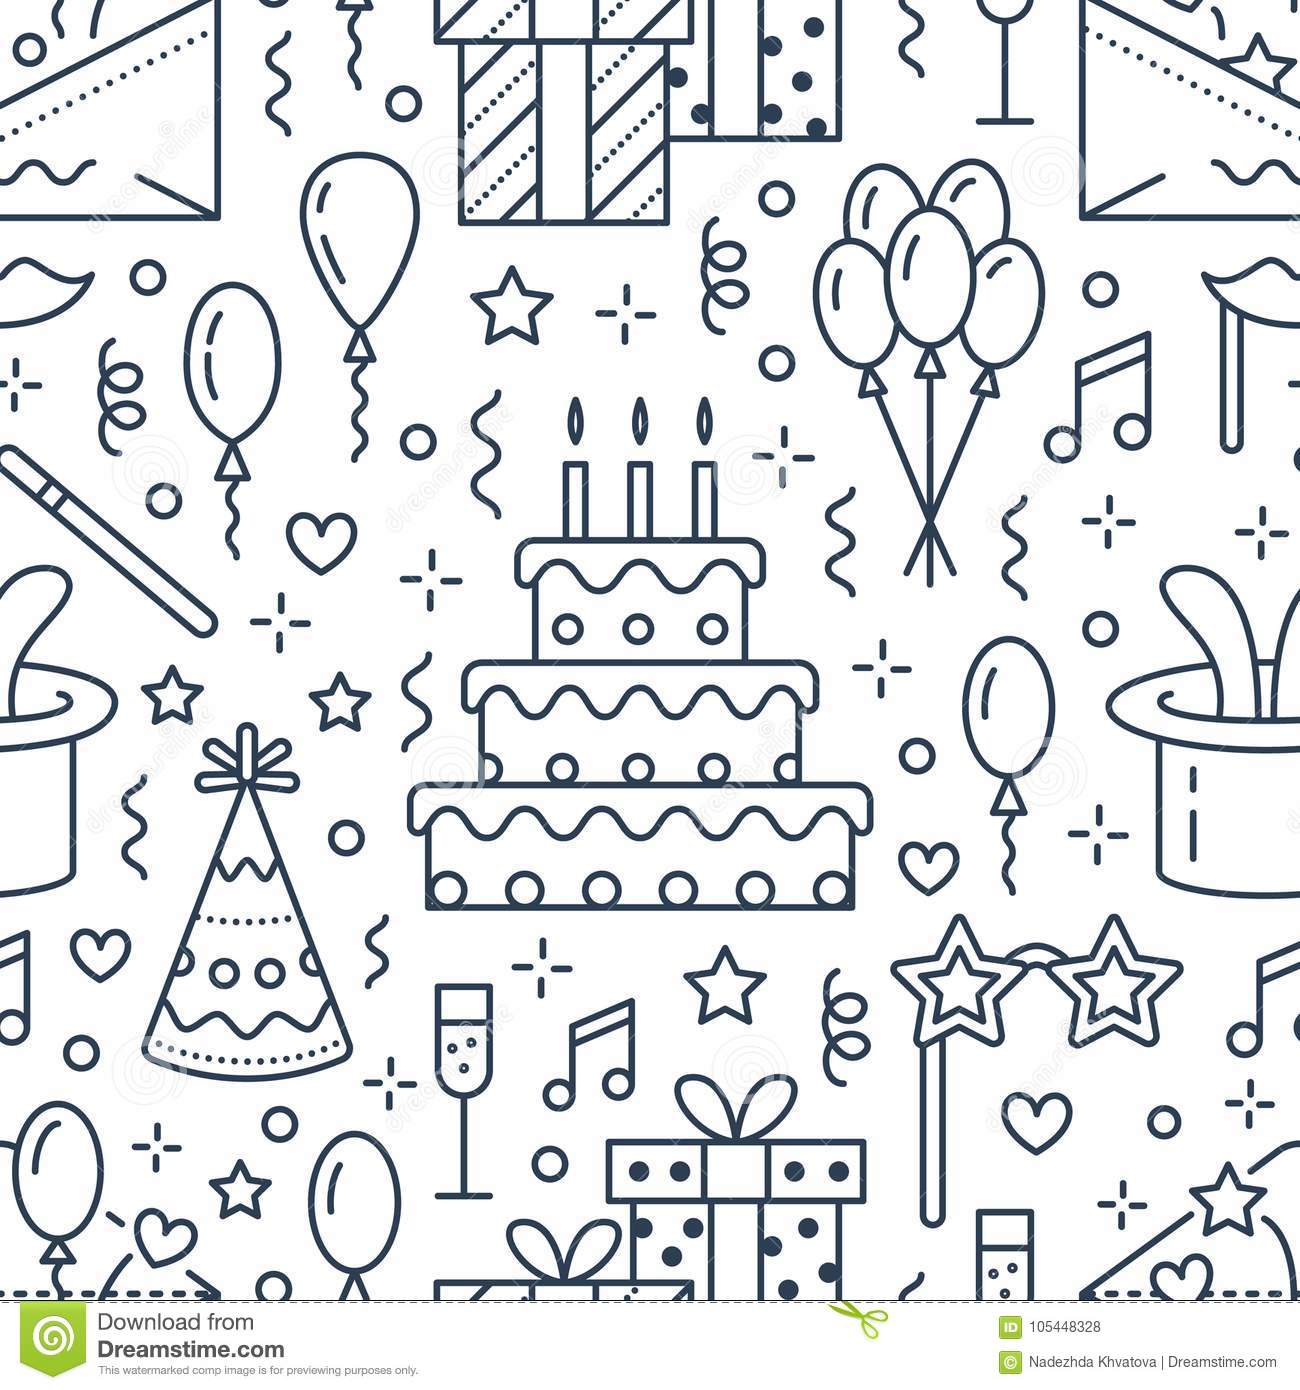 Birthday party seamless pattern, flat line illustration. Vector icons of event agency, wedding organization - cake